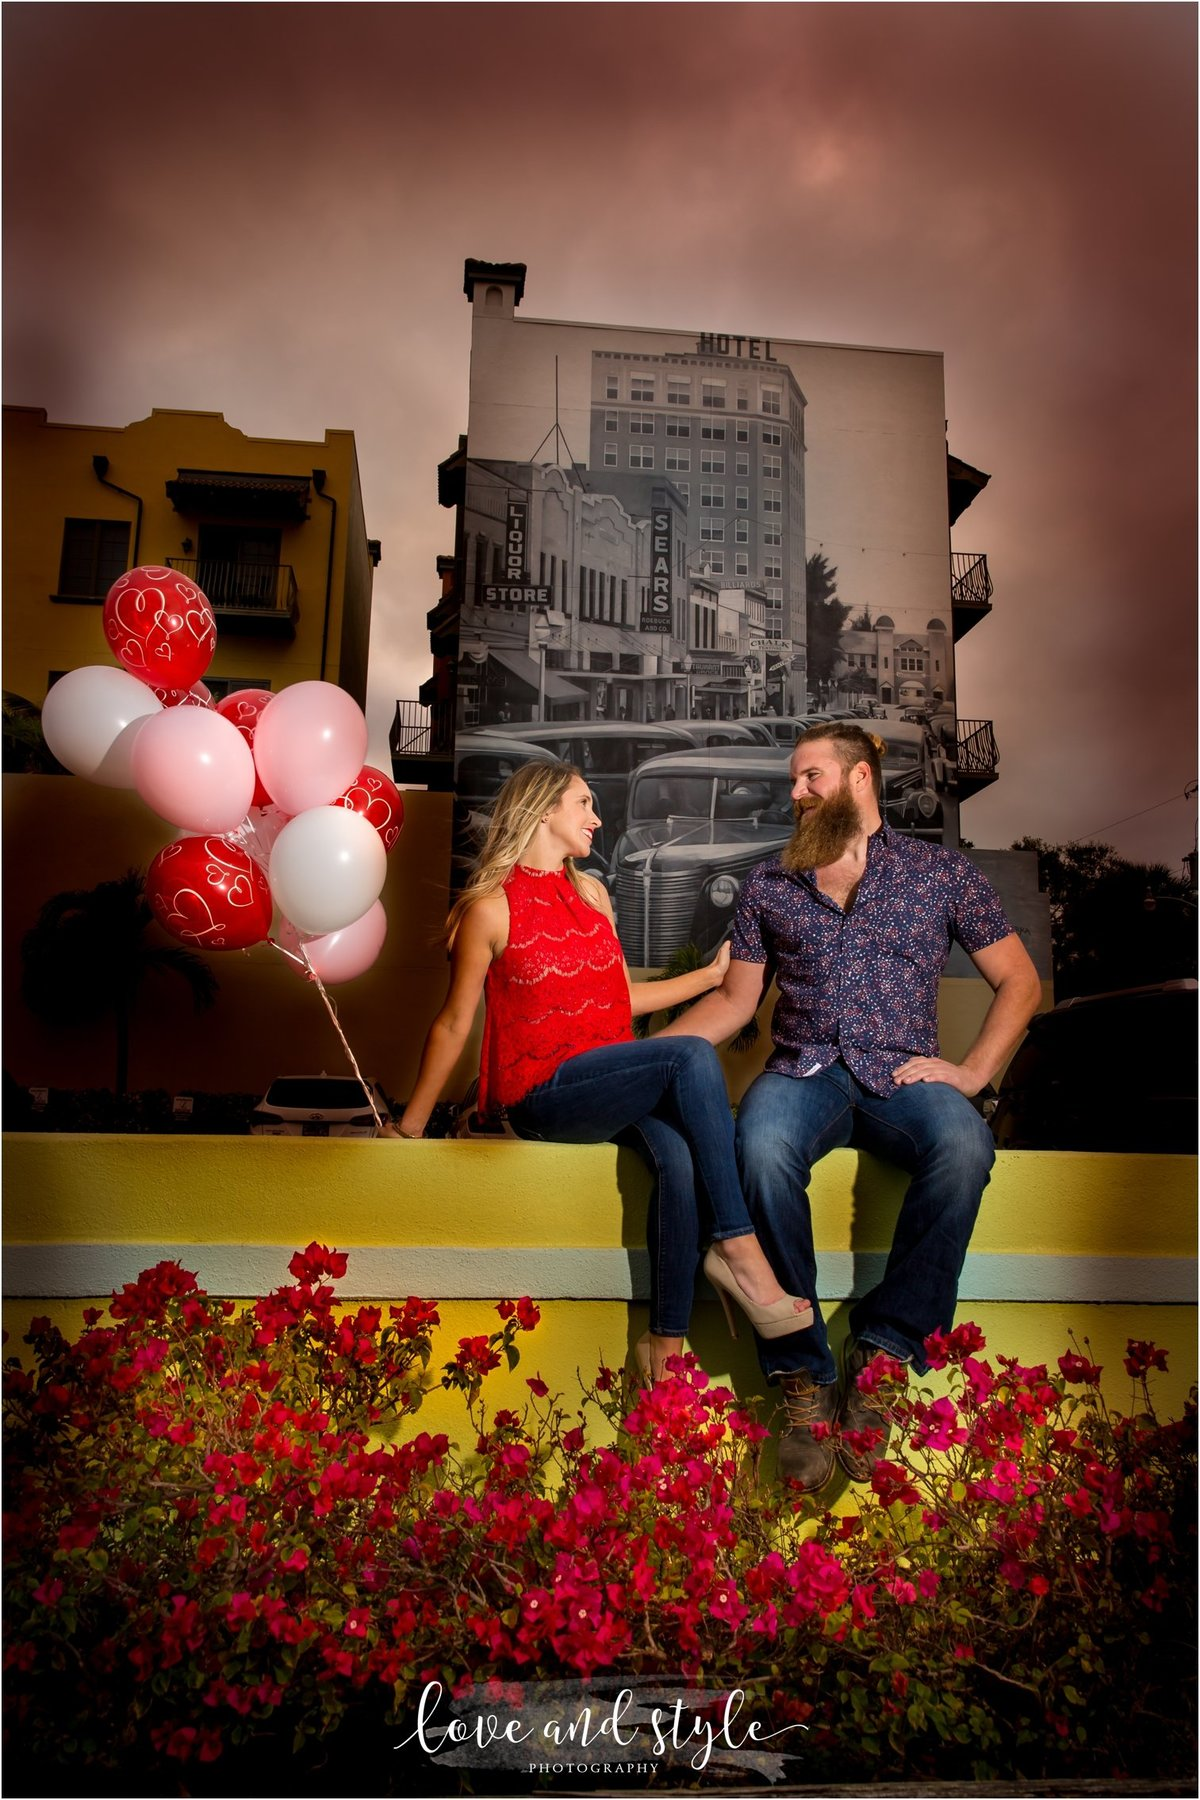 Sarasota Engagement Photography of couple with  red and pink balloons downtown Sarasota